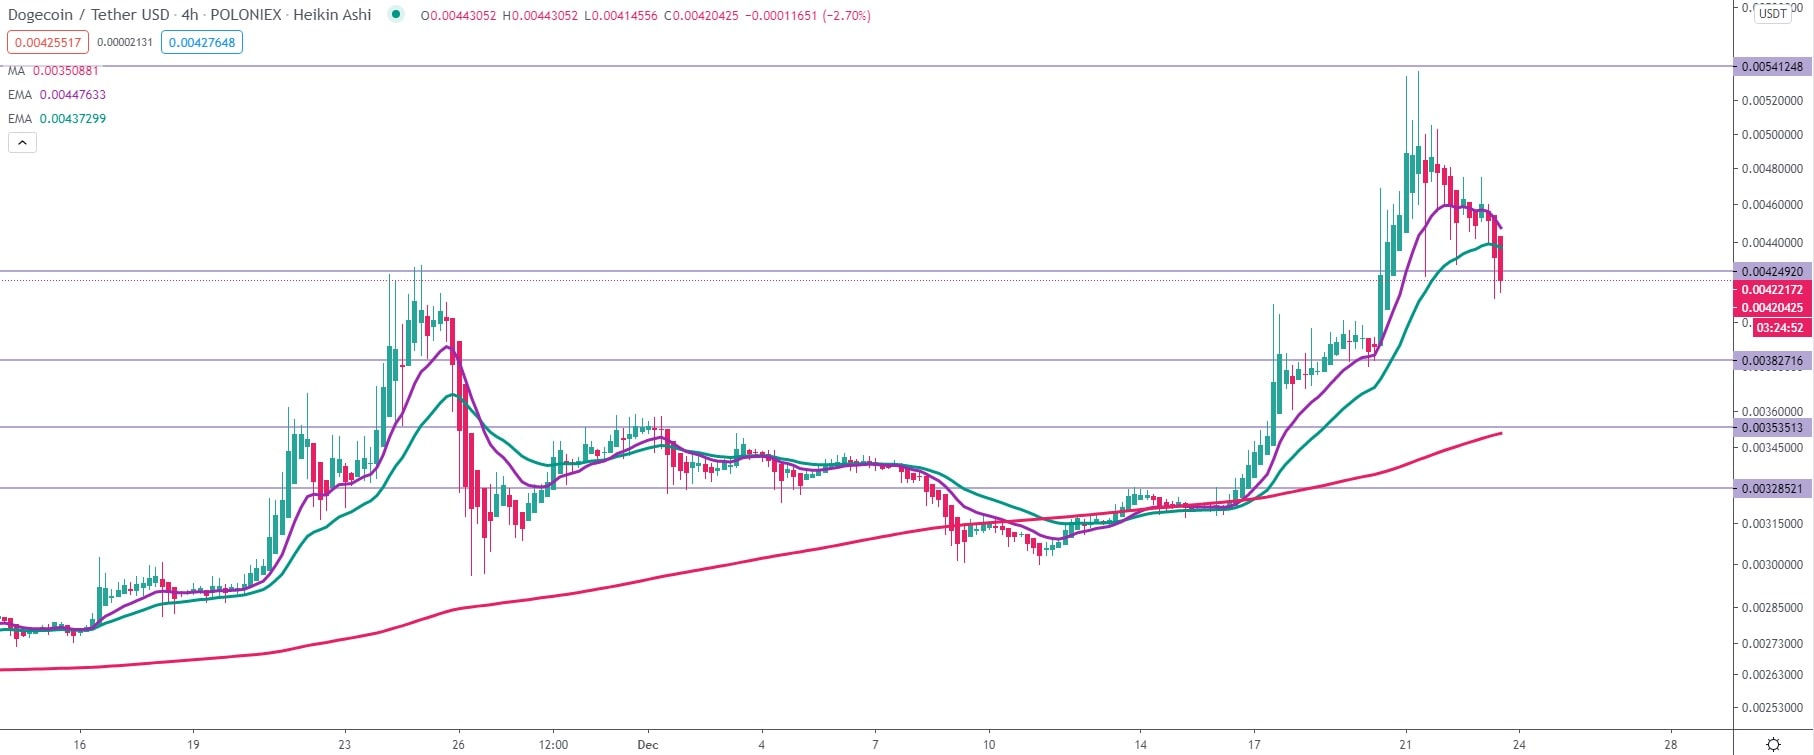 Dogecoin (DOGE) price prediction for 2020-2030. | StormGain